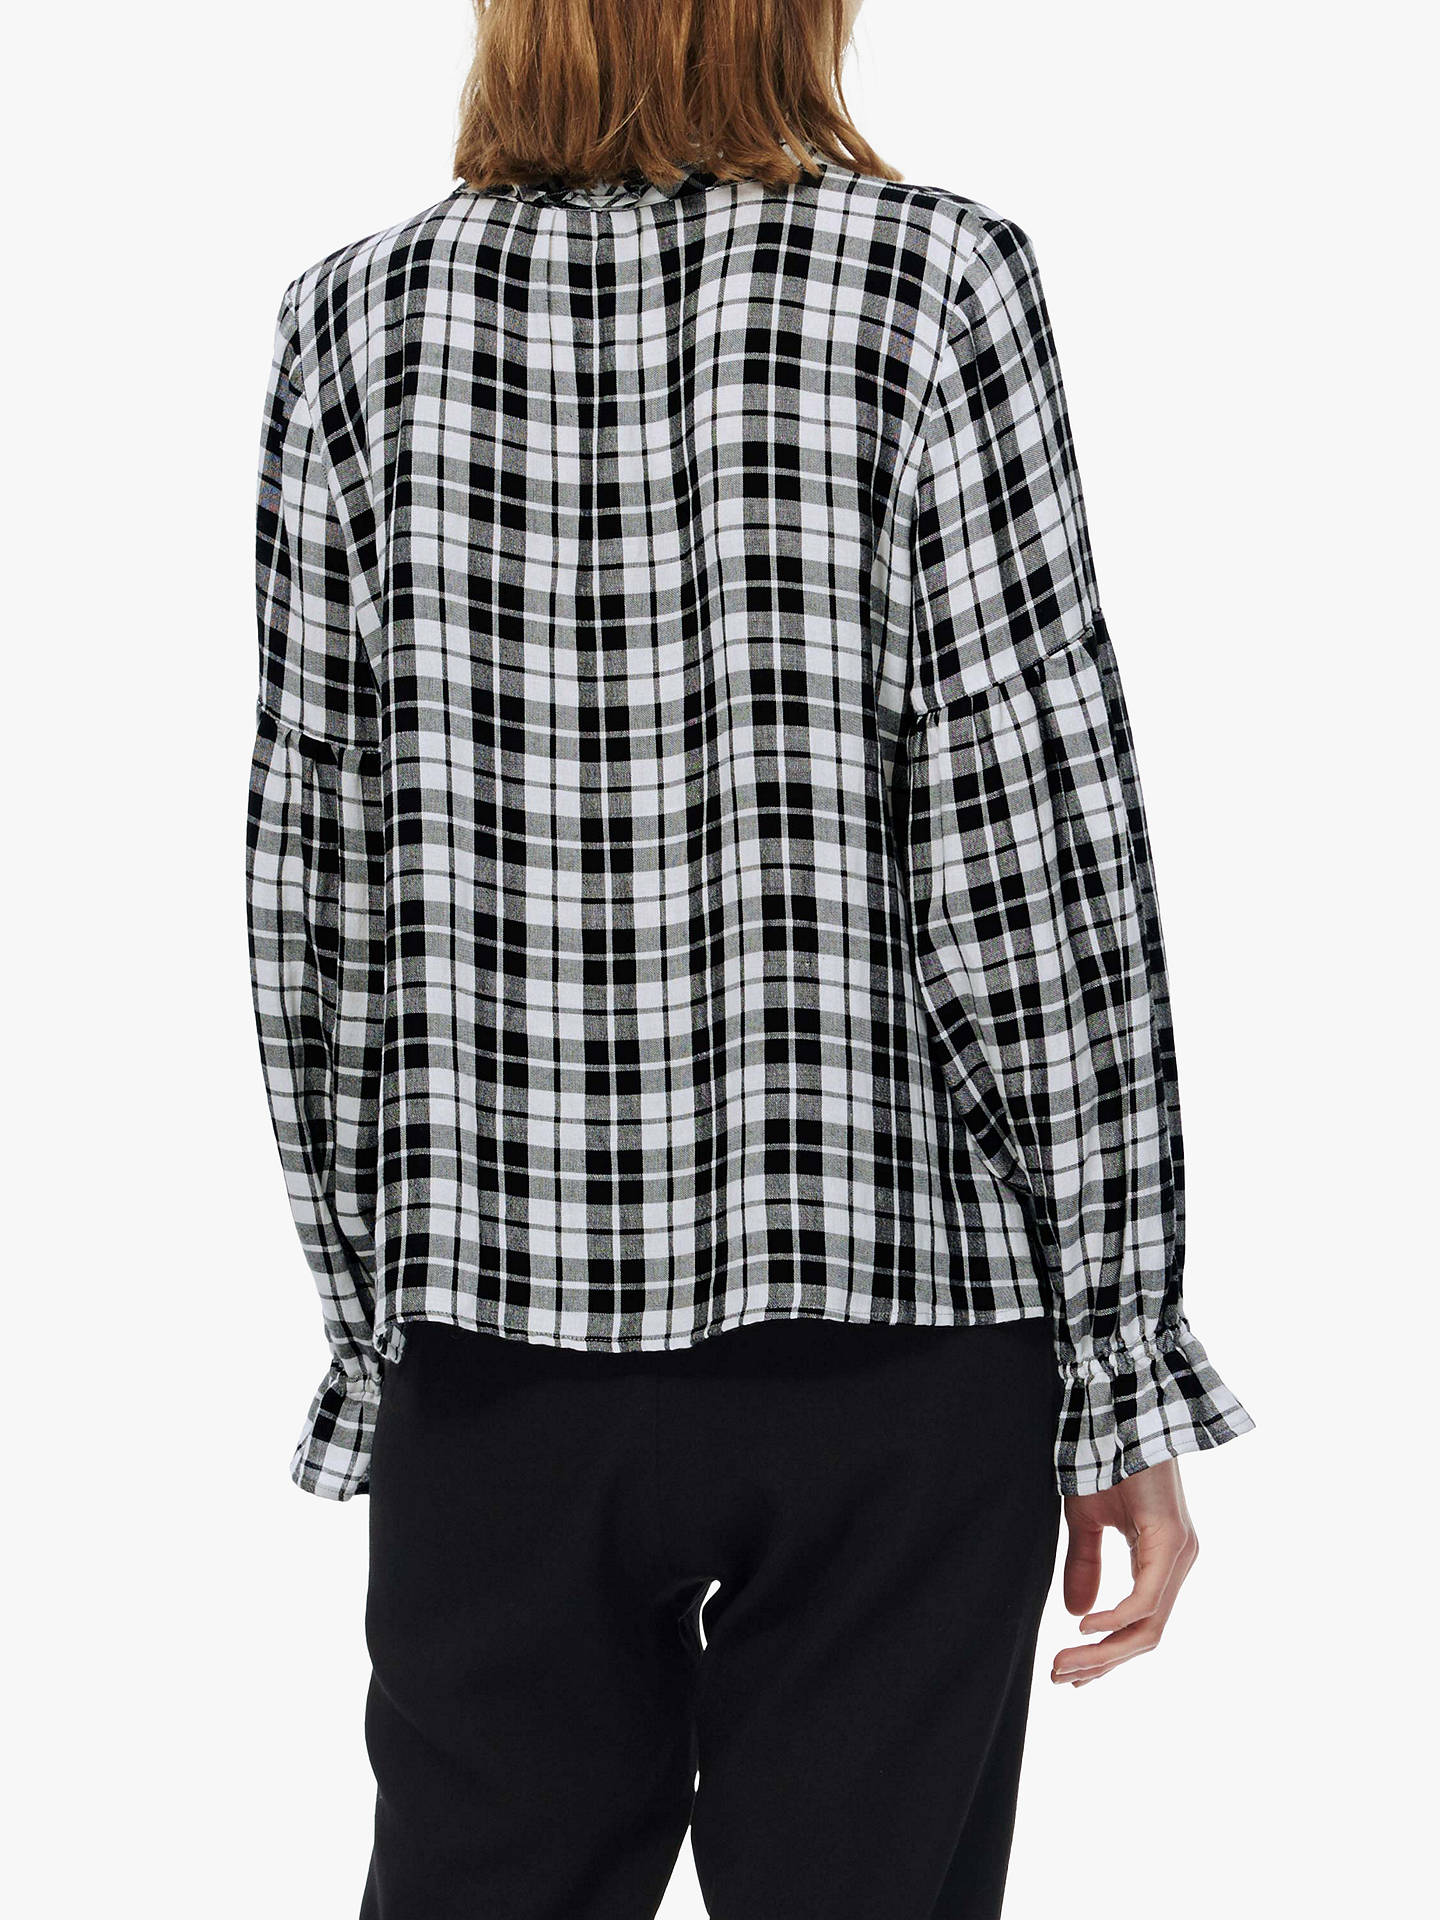 BuyBrora Ruffle Check Blouse, Monochrome, 6 Online at johnlewis.com